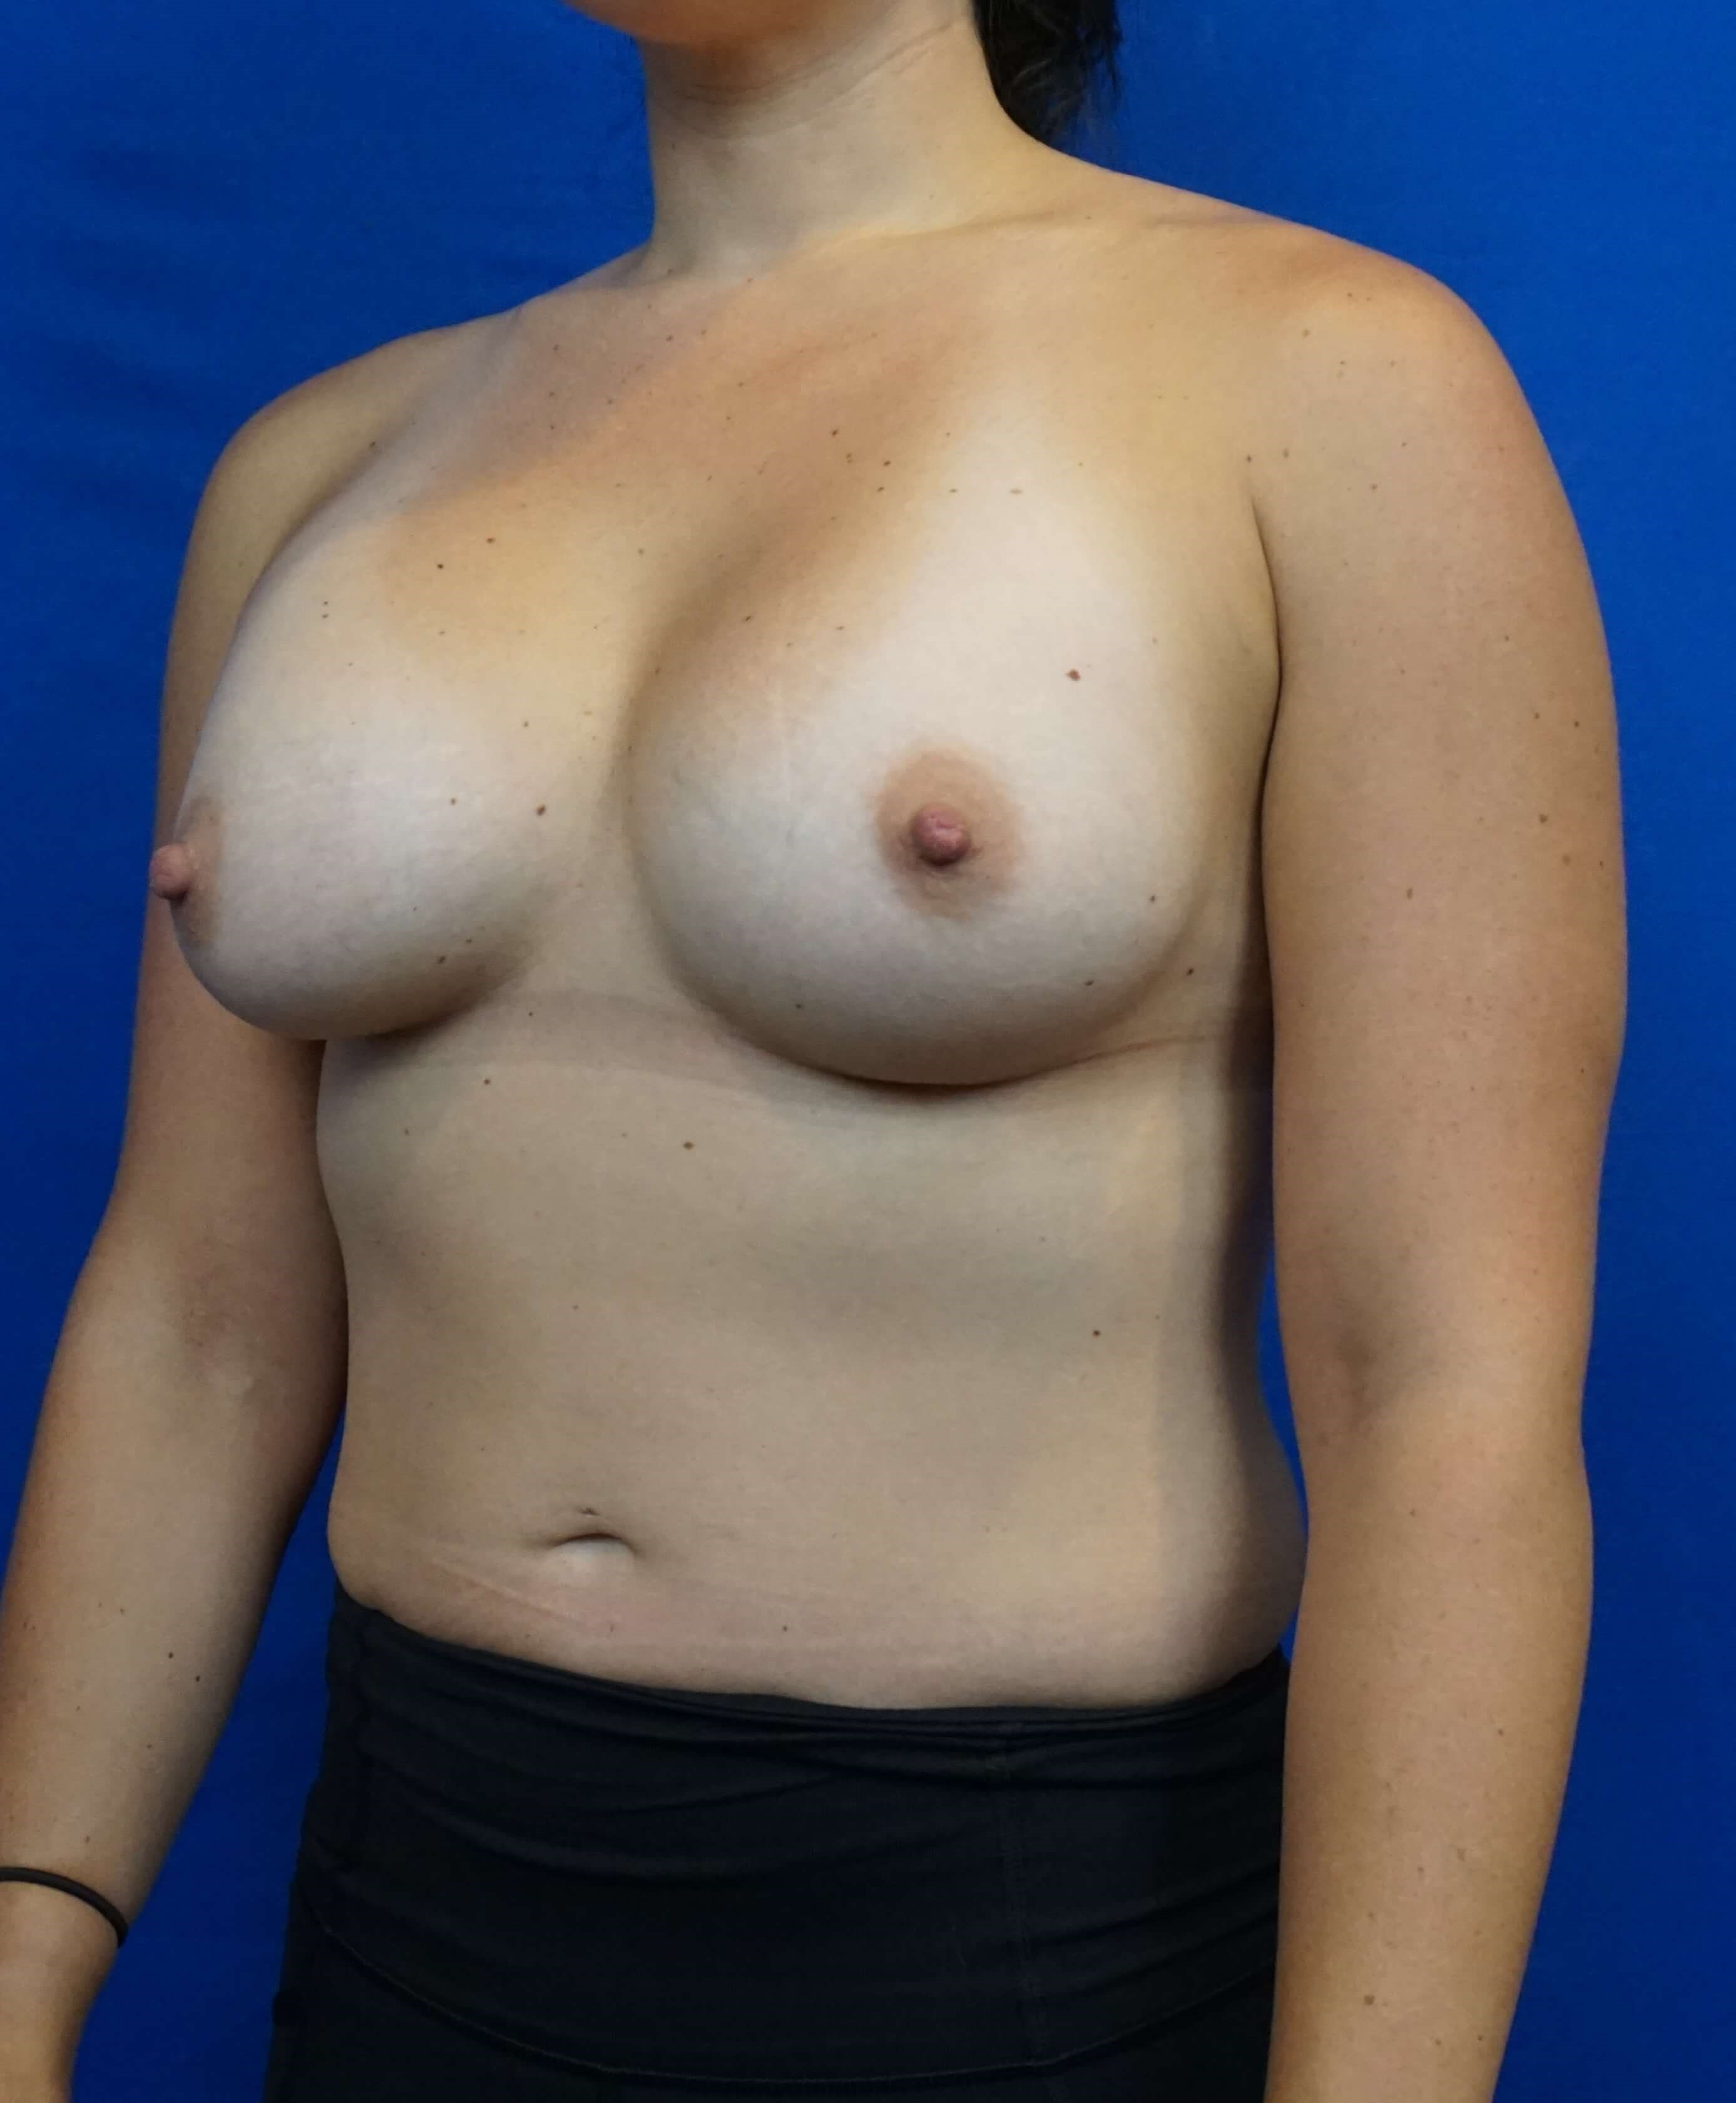 Breast Augmentation Photos LV After Breast Augmentation